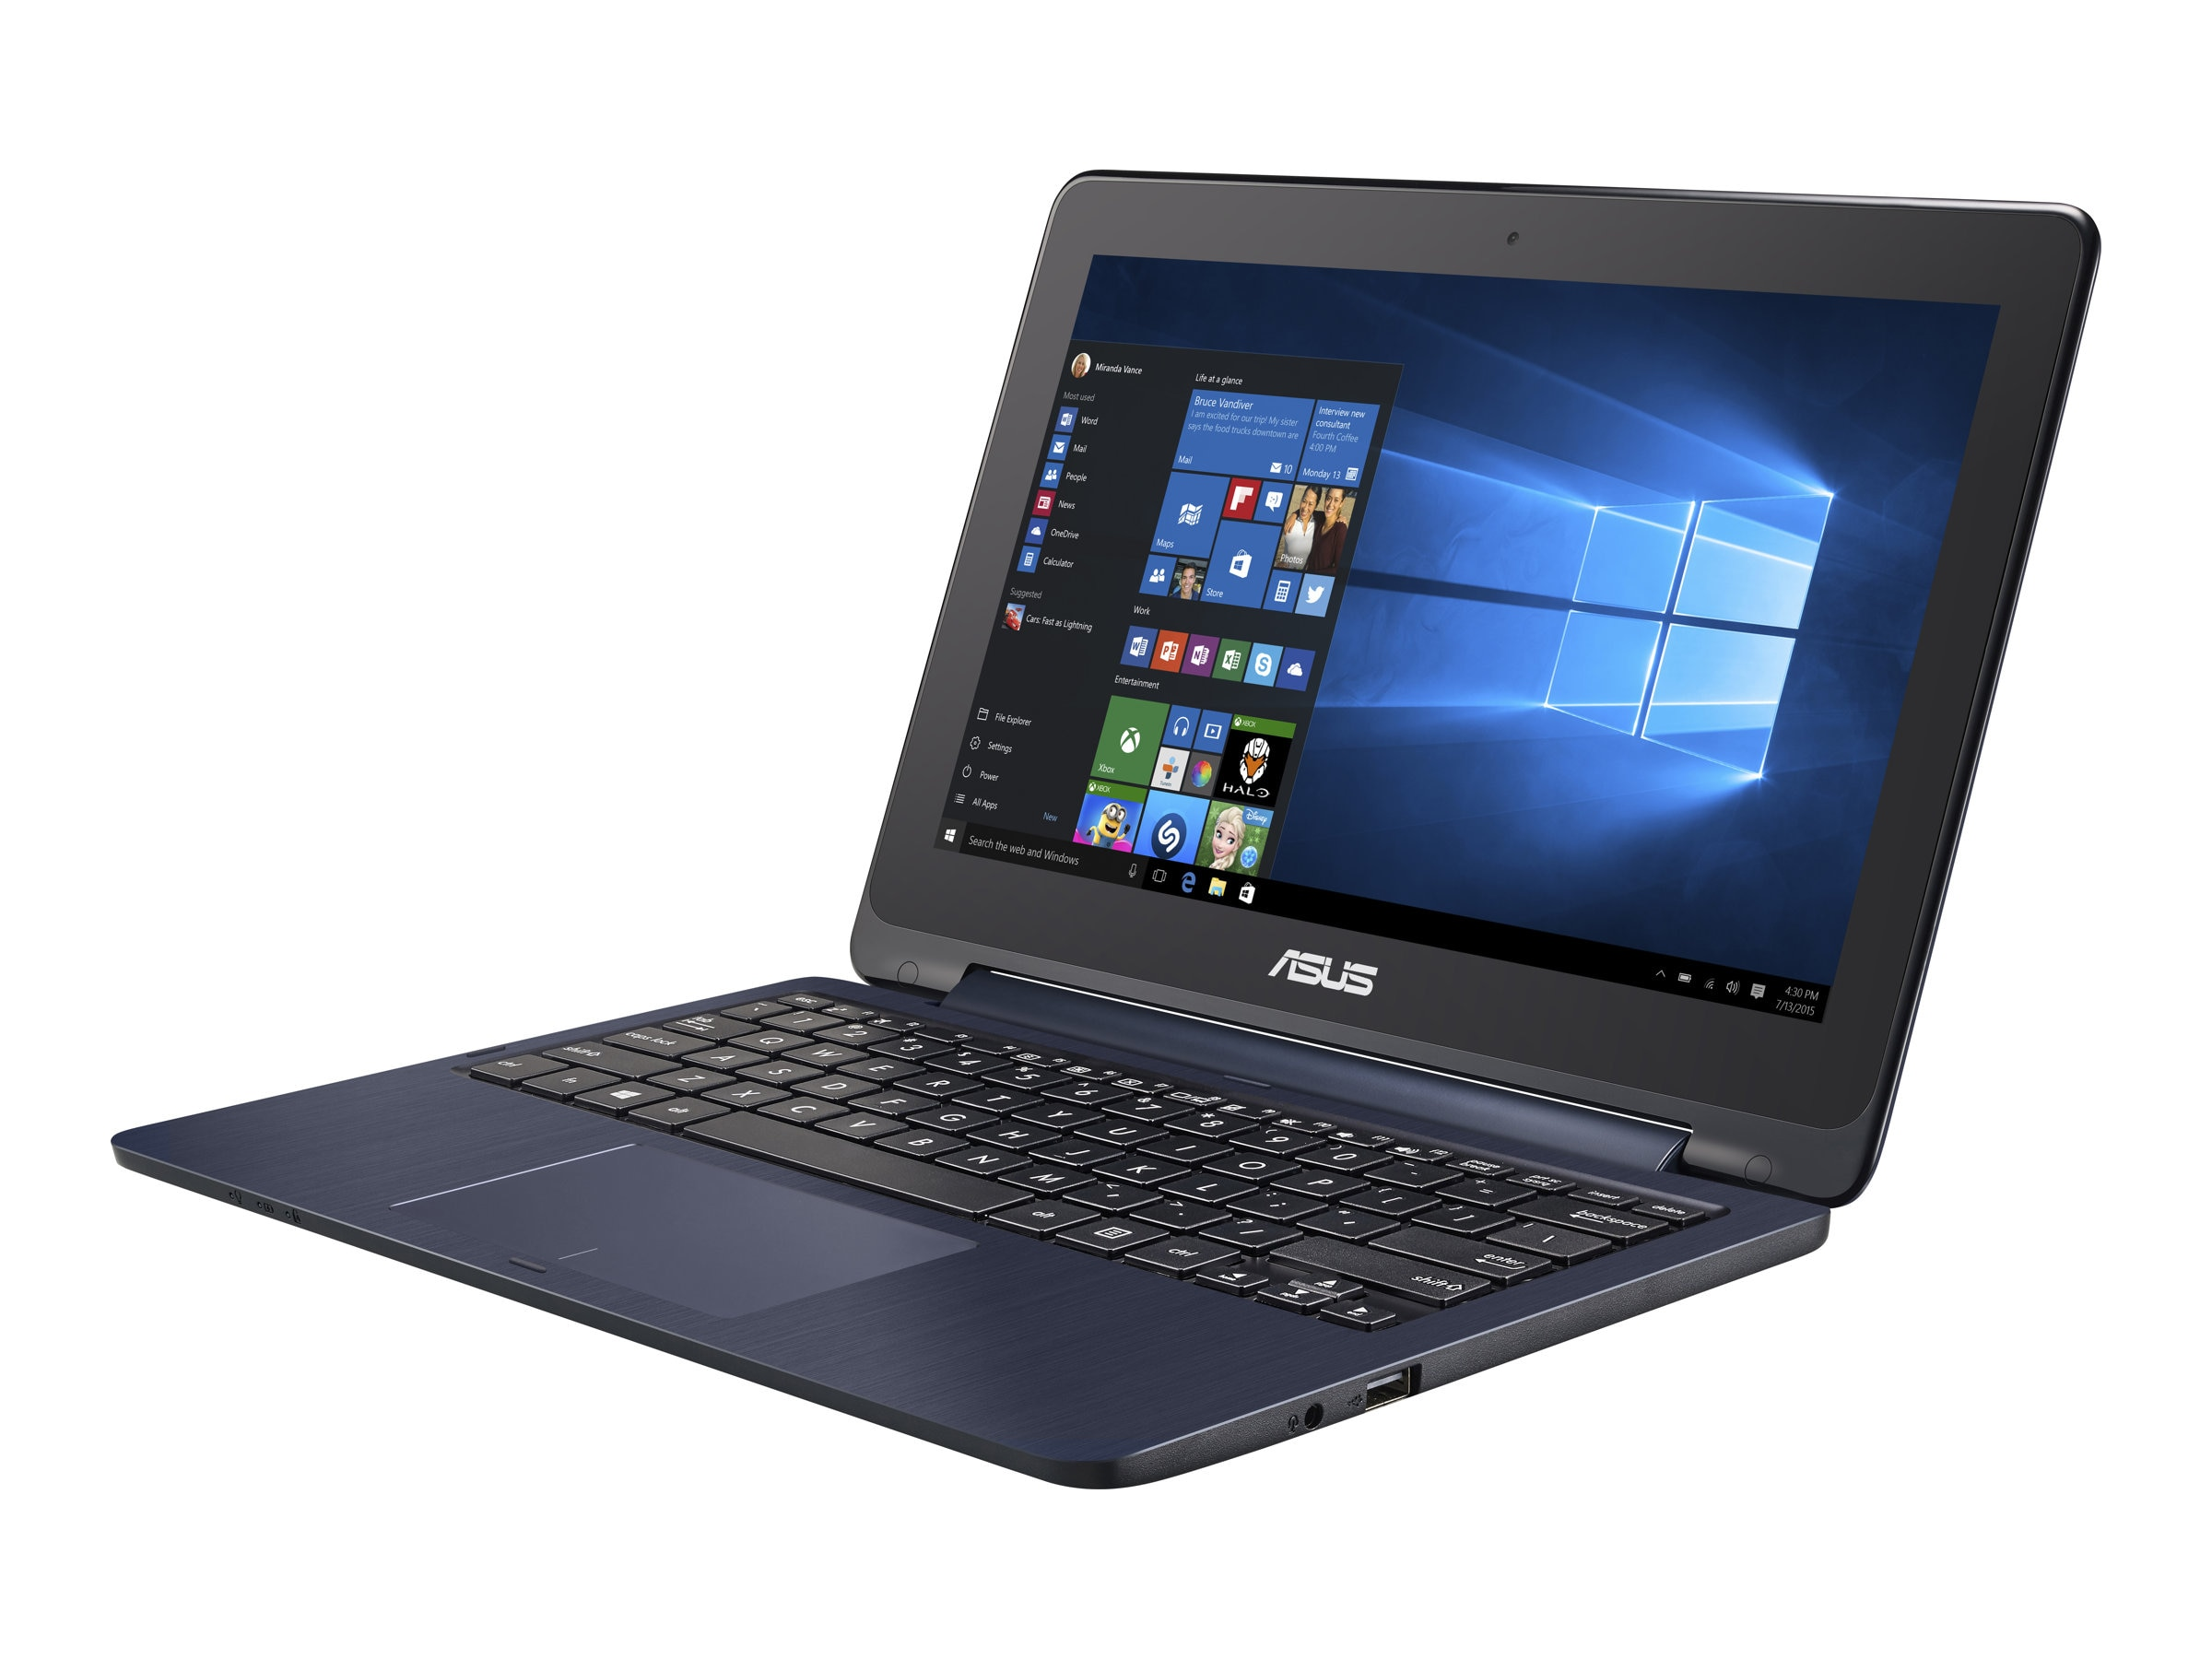 Asus TP200SA Transformer Book, TP200SA-DH04T, 30578401, Notebooks - Convertible